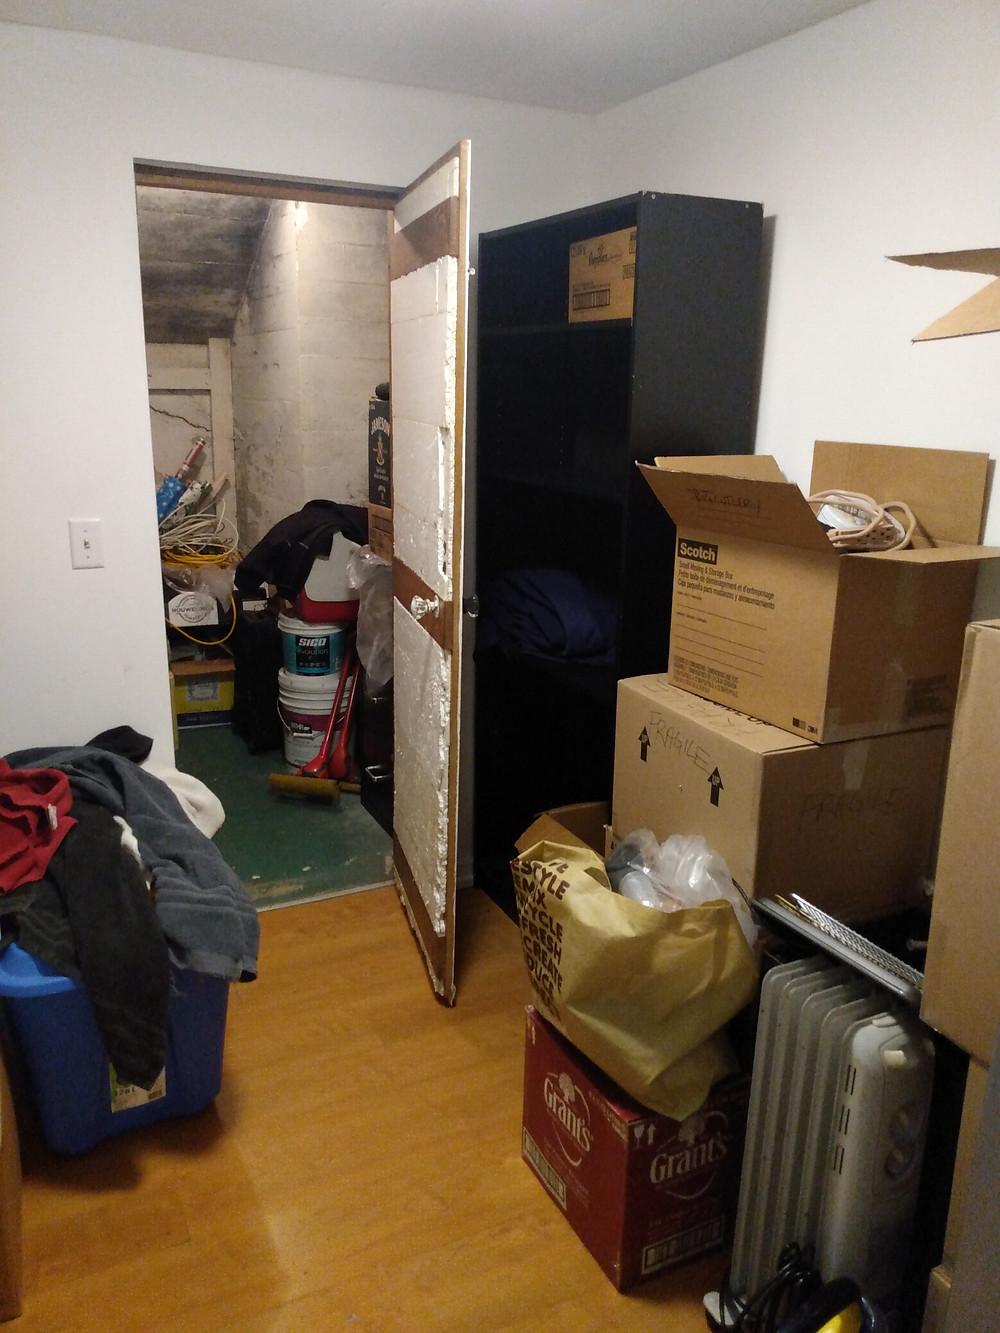 I'm going to pack the hell out of that storage room